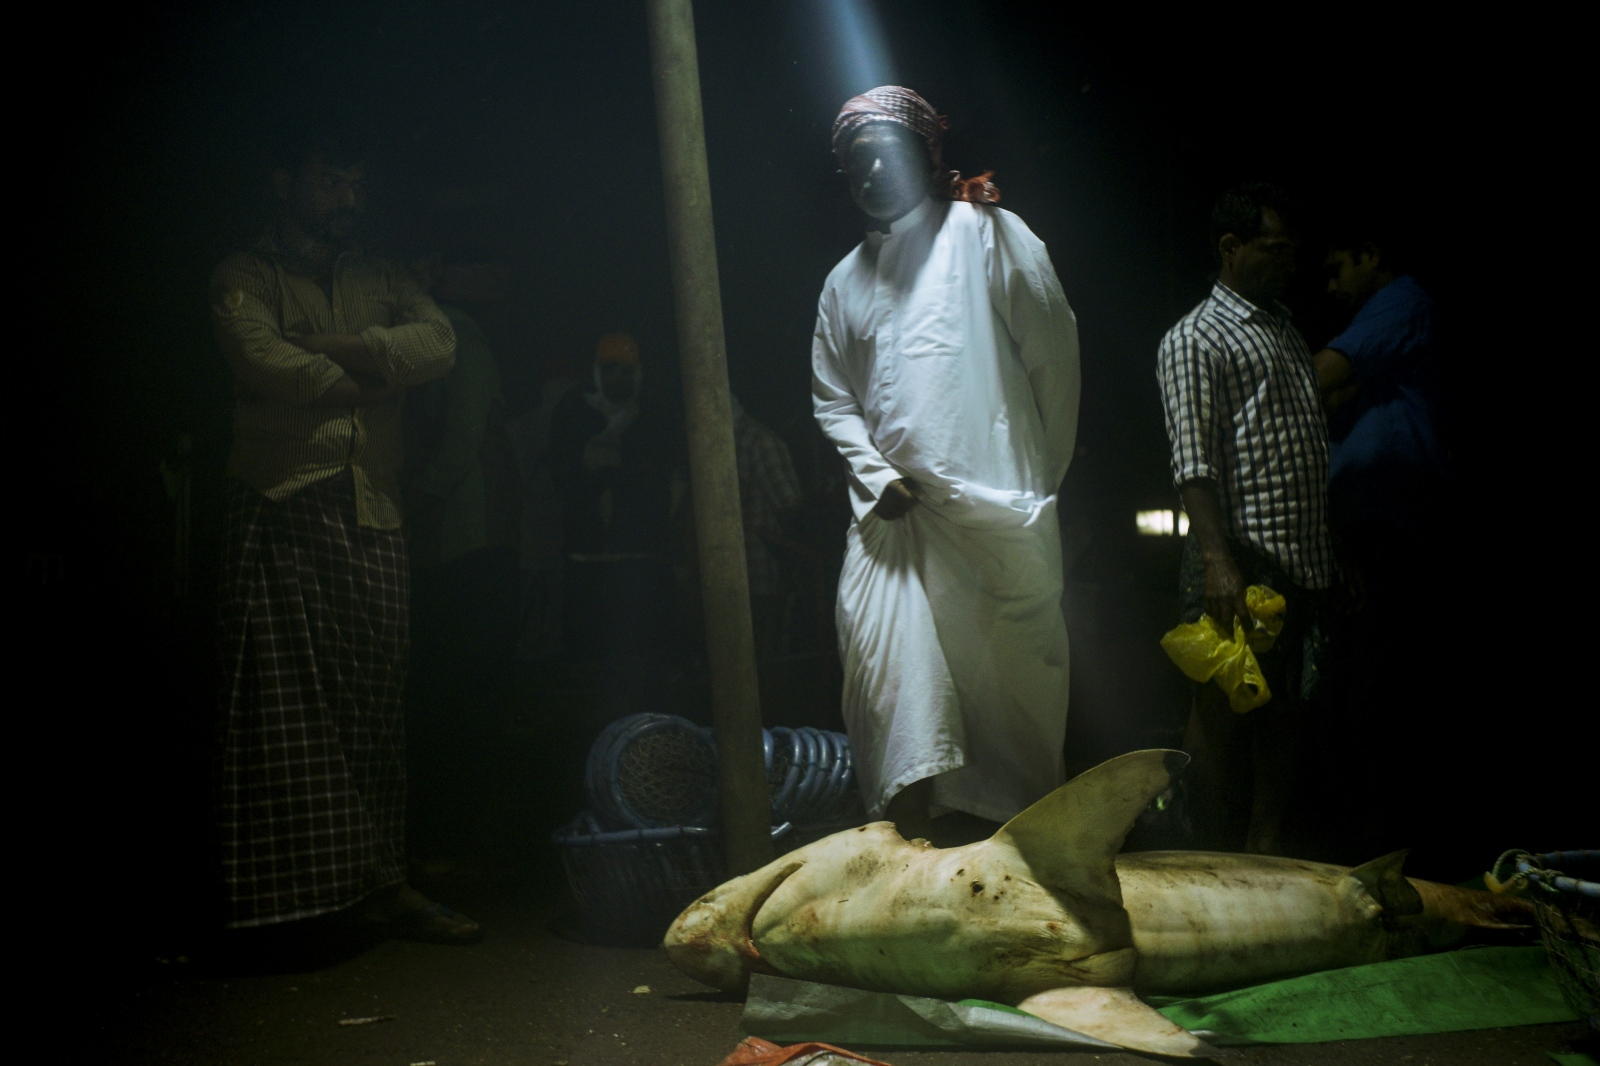 An Emirati auctions off a shark at 5 in the morning.